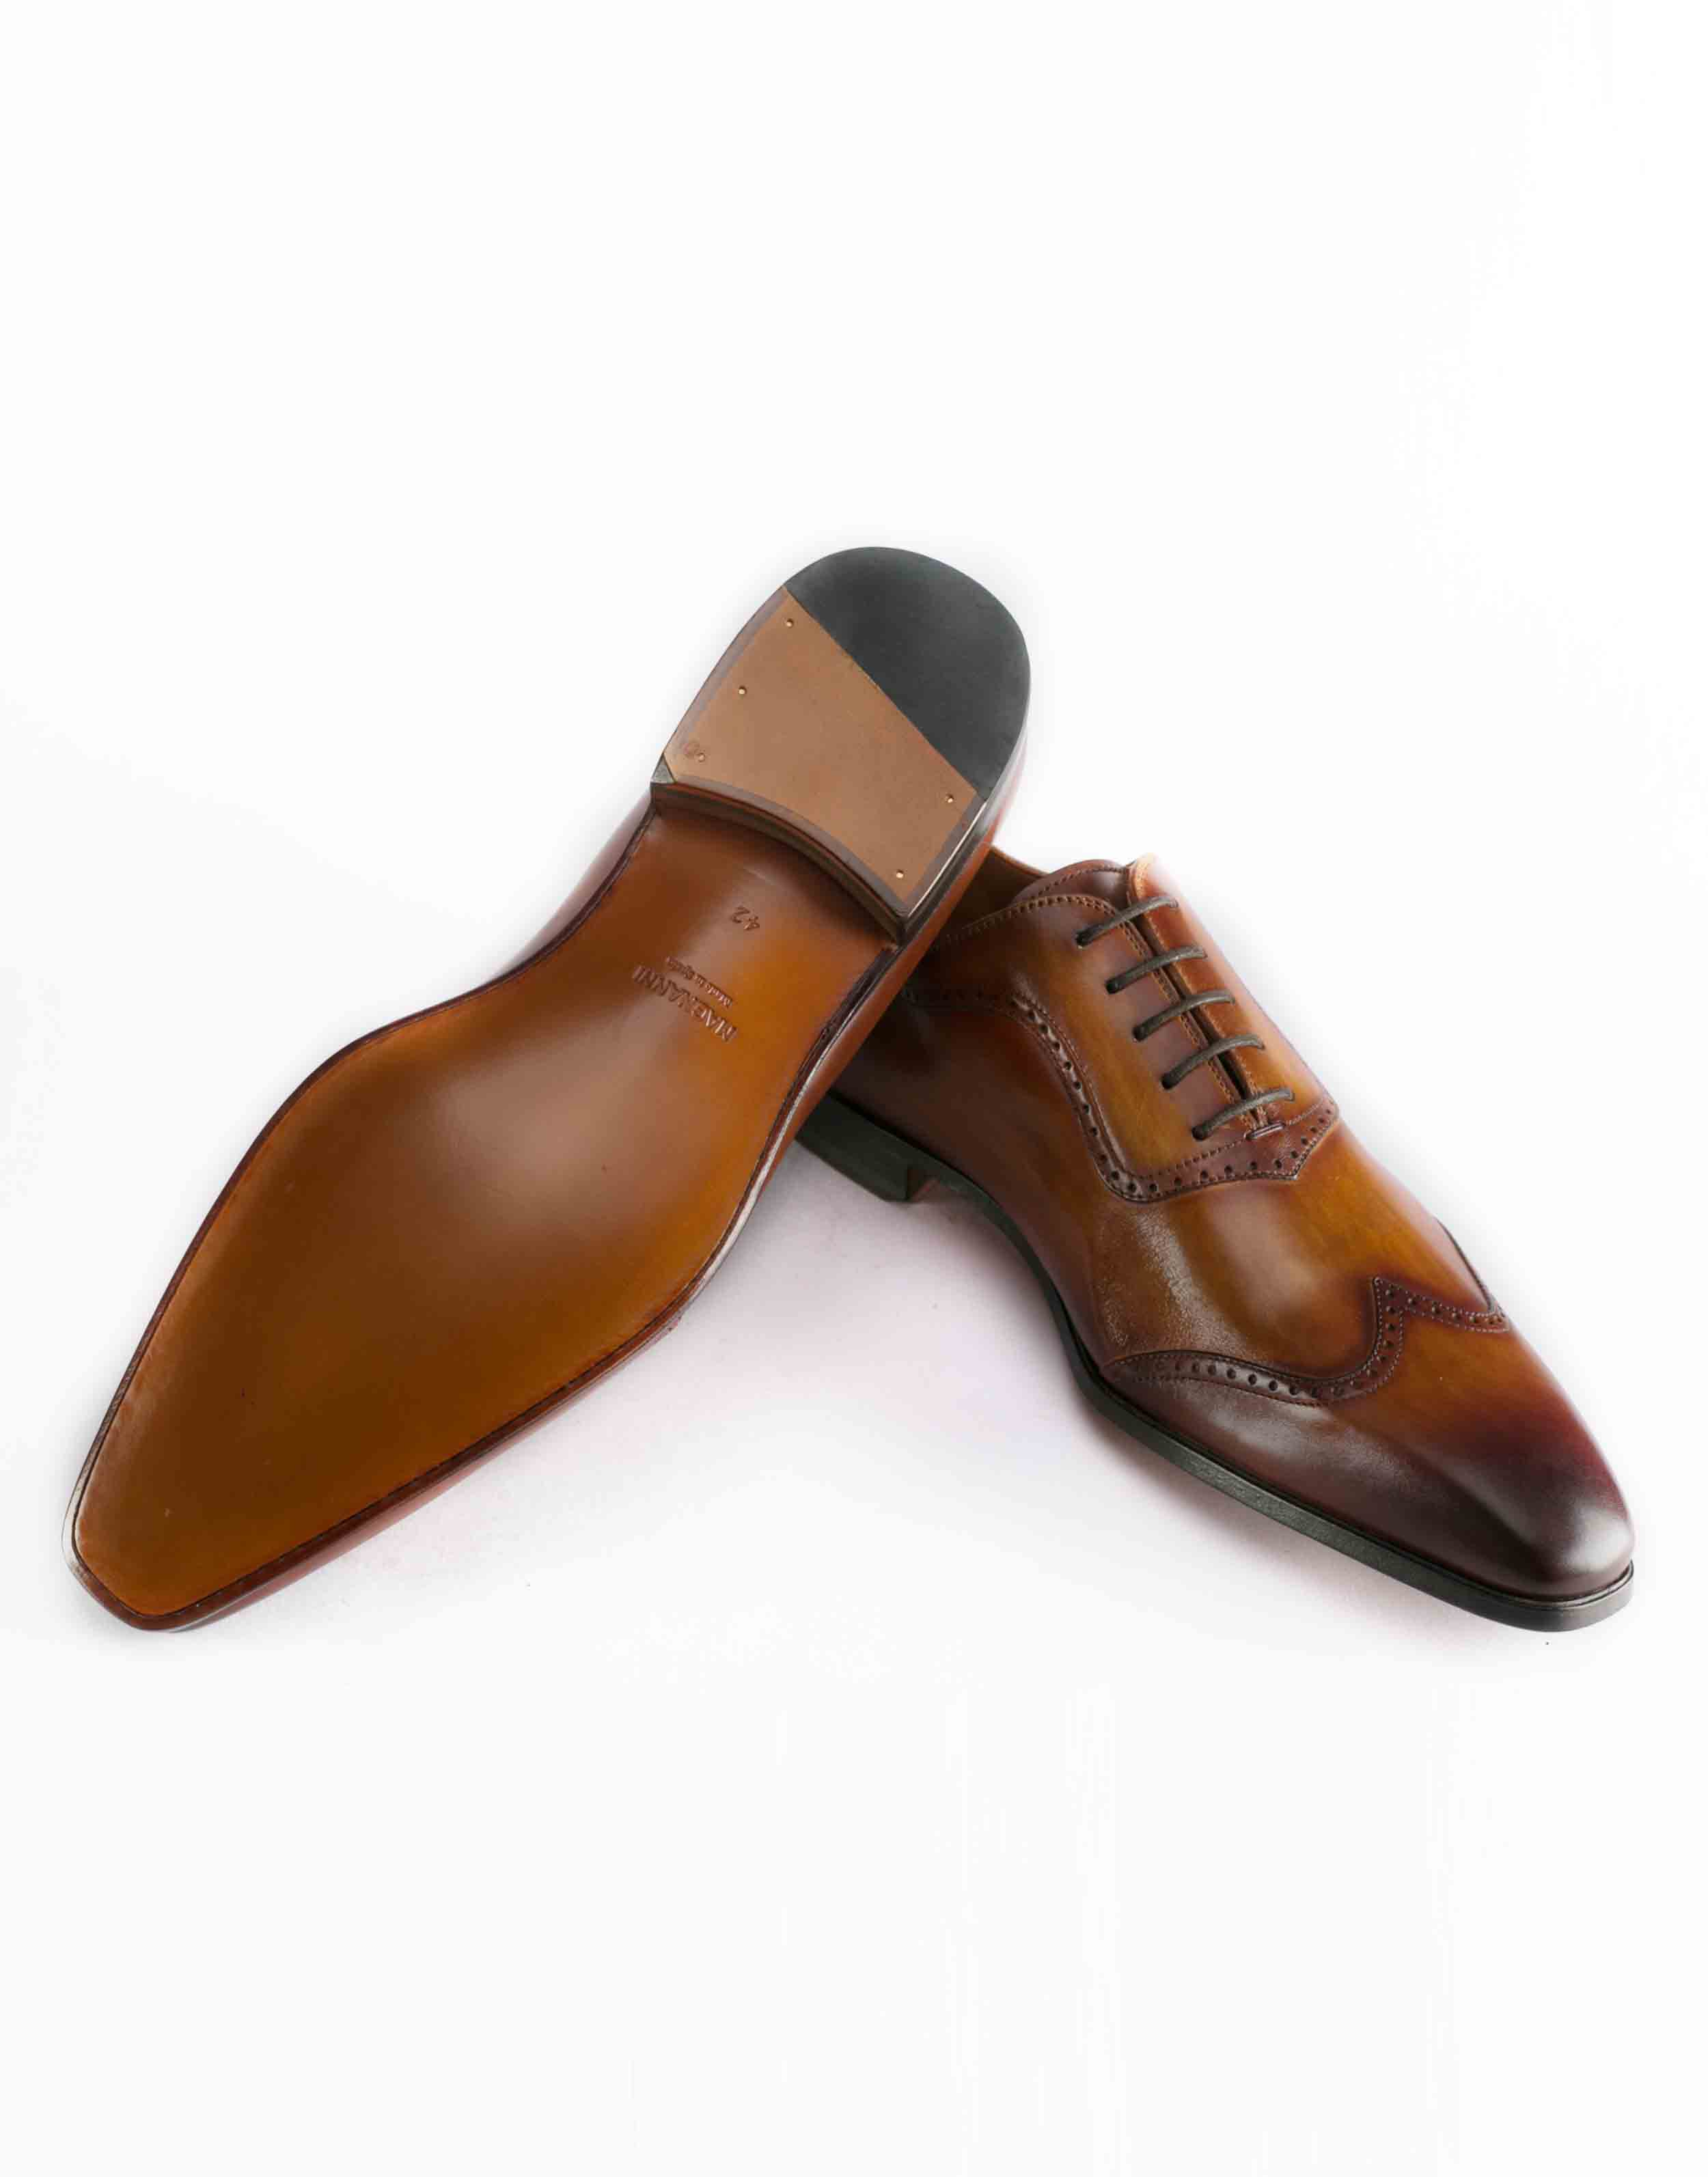 CUERO WINGTIP OXFORDS3